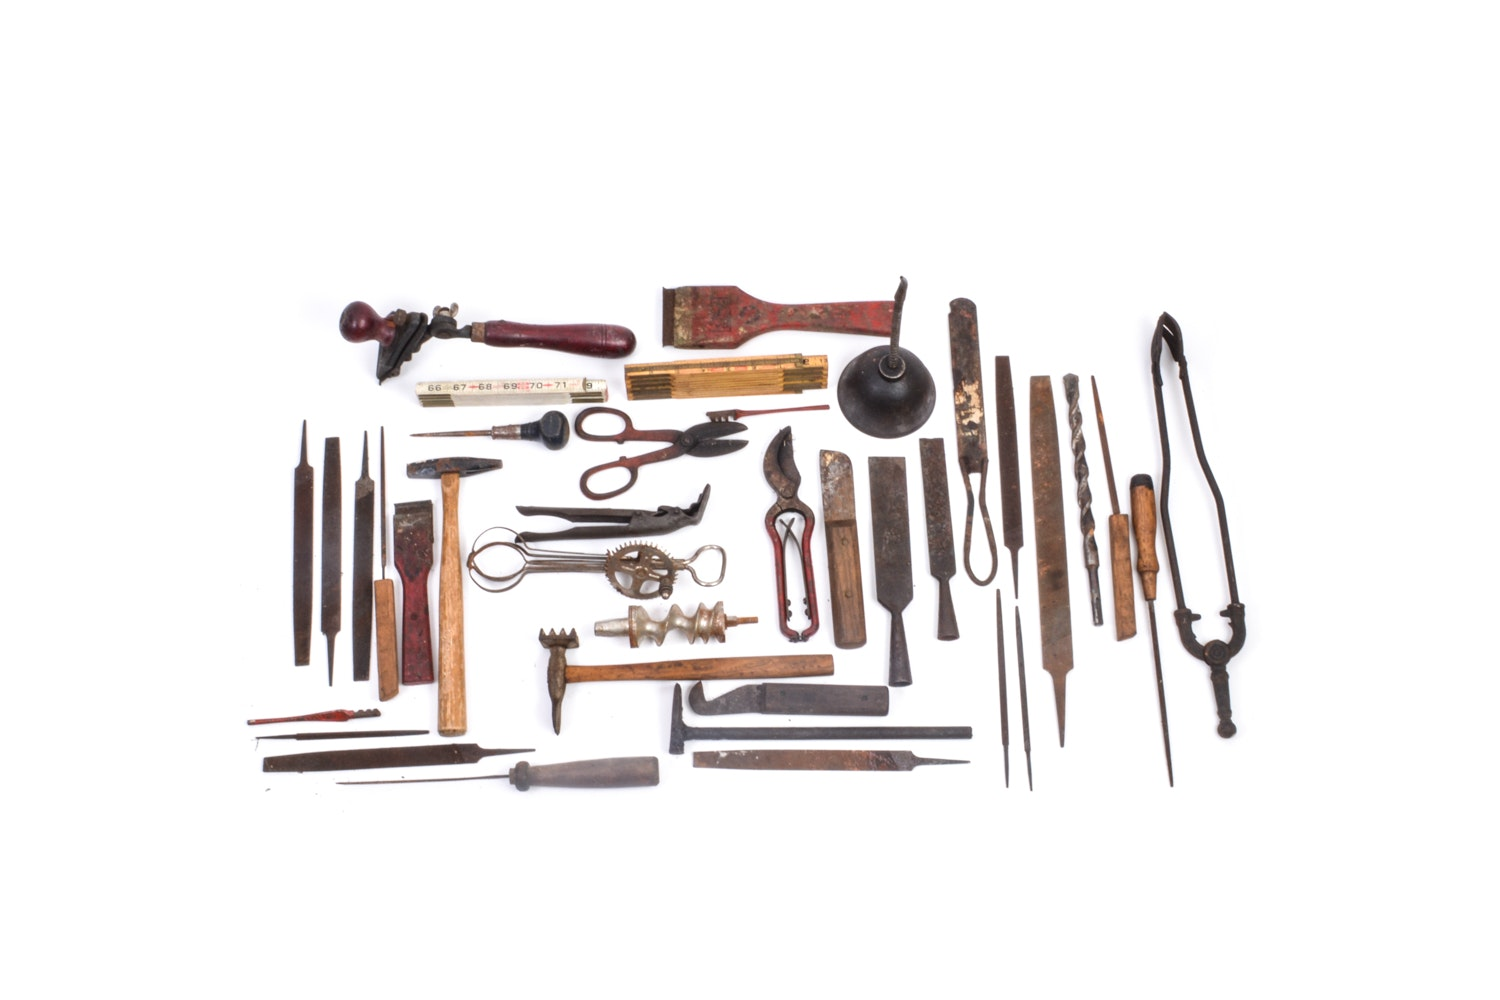 Collection of Vintage and Antique Tools